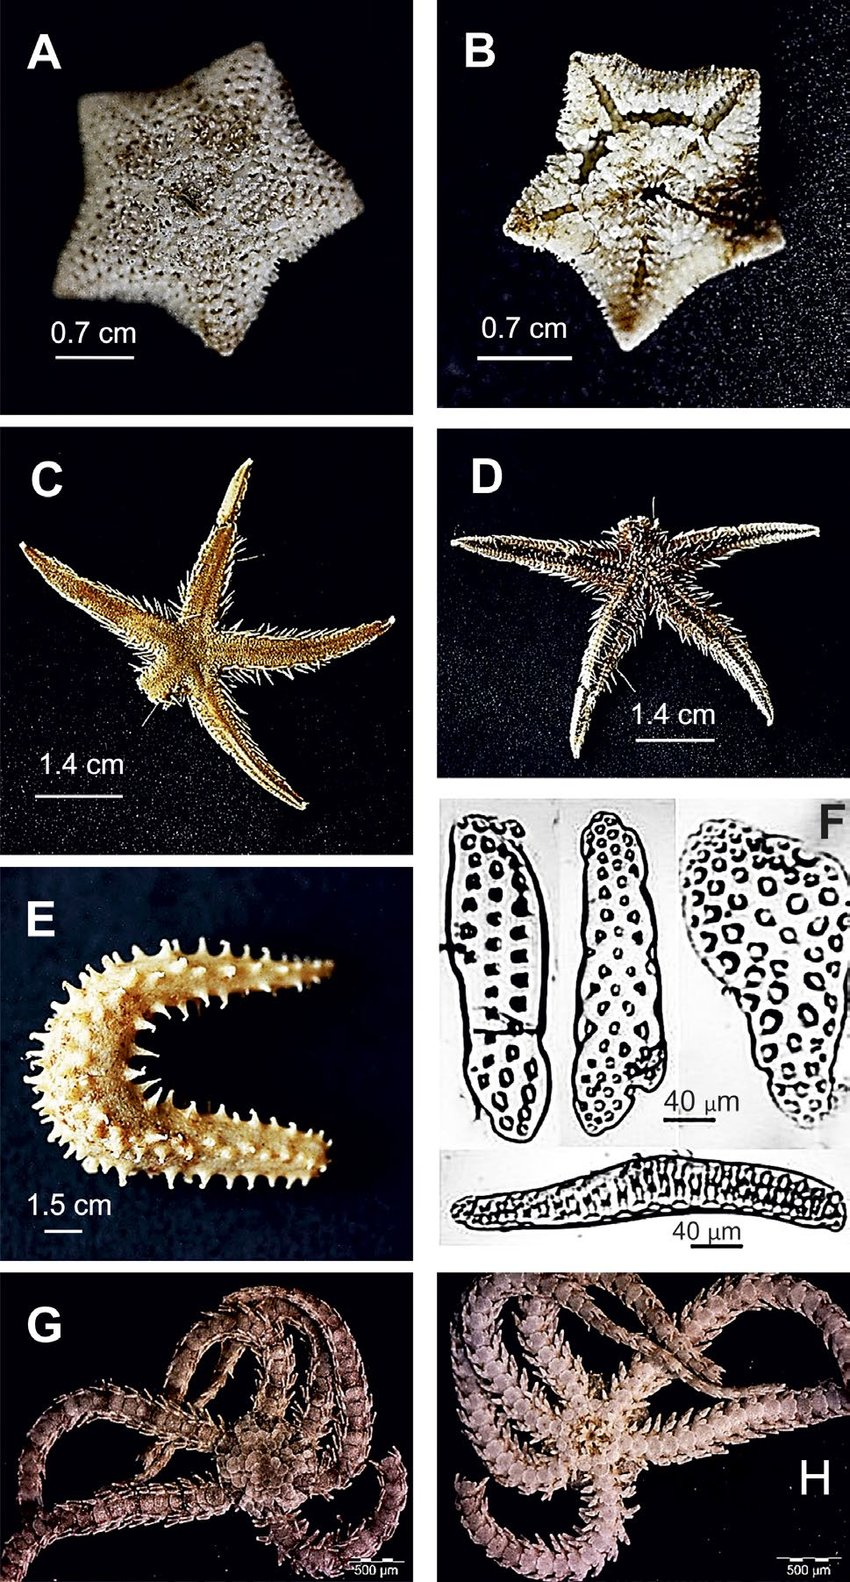 medium resolution of  asterina pancerii aboral view a and oral view b scale